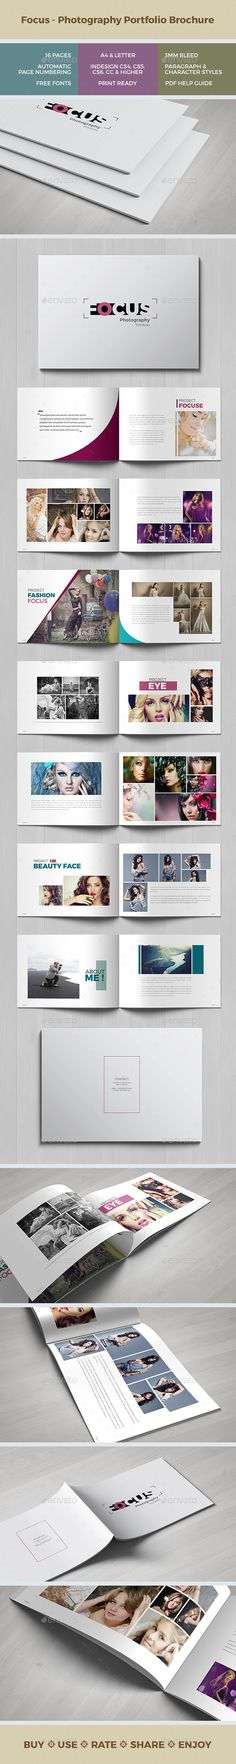 Focus - Multipurpose Portfolio Brochure